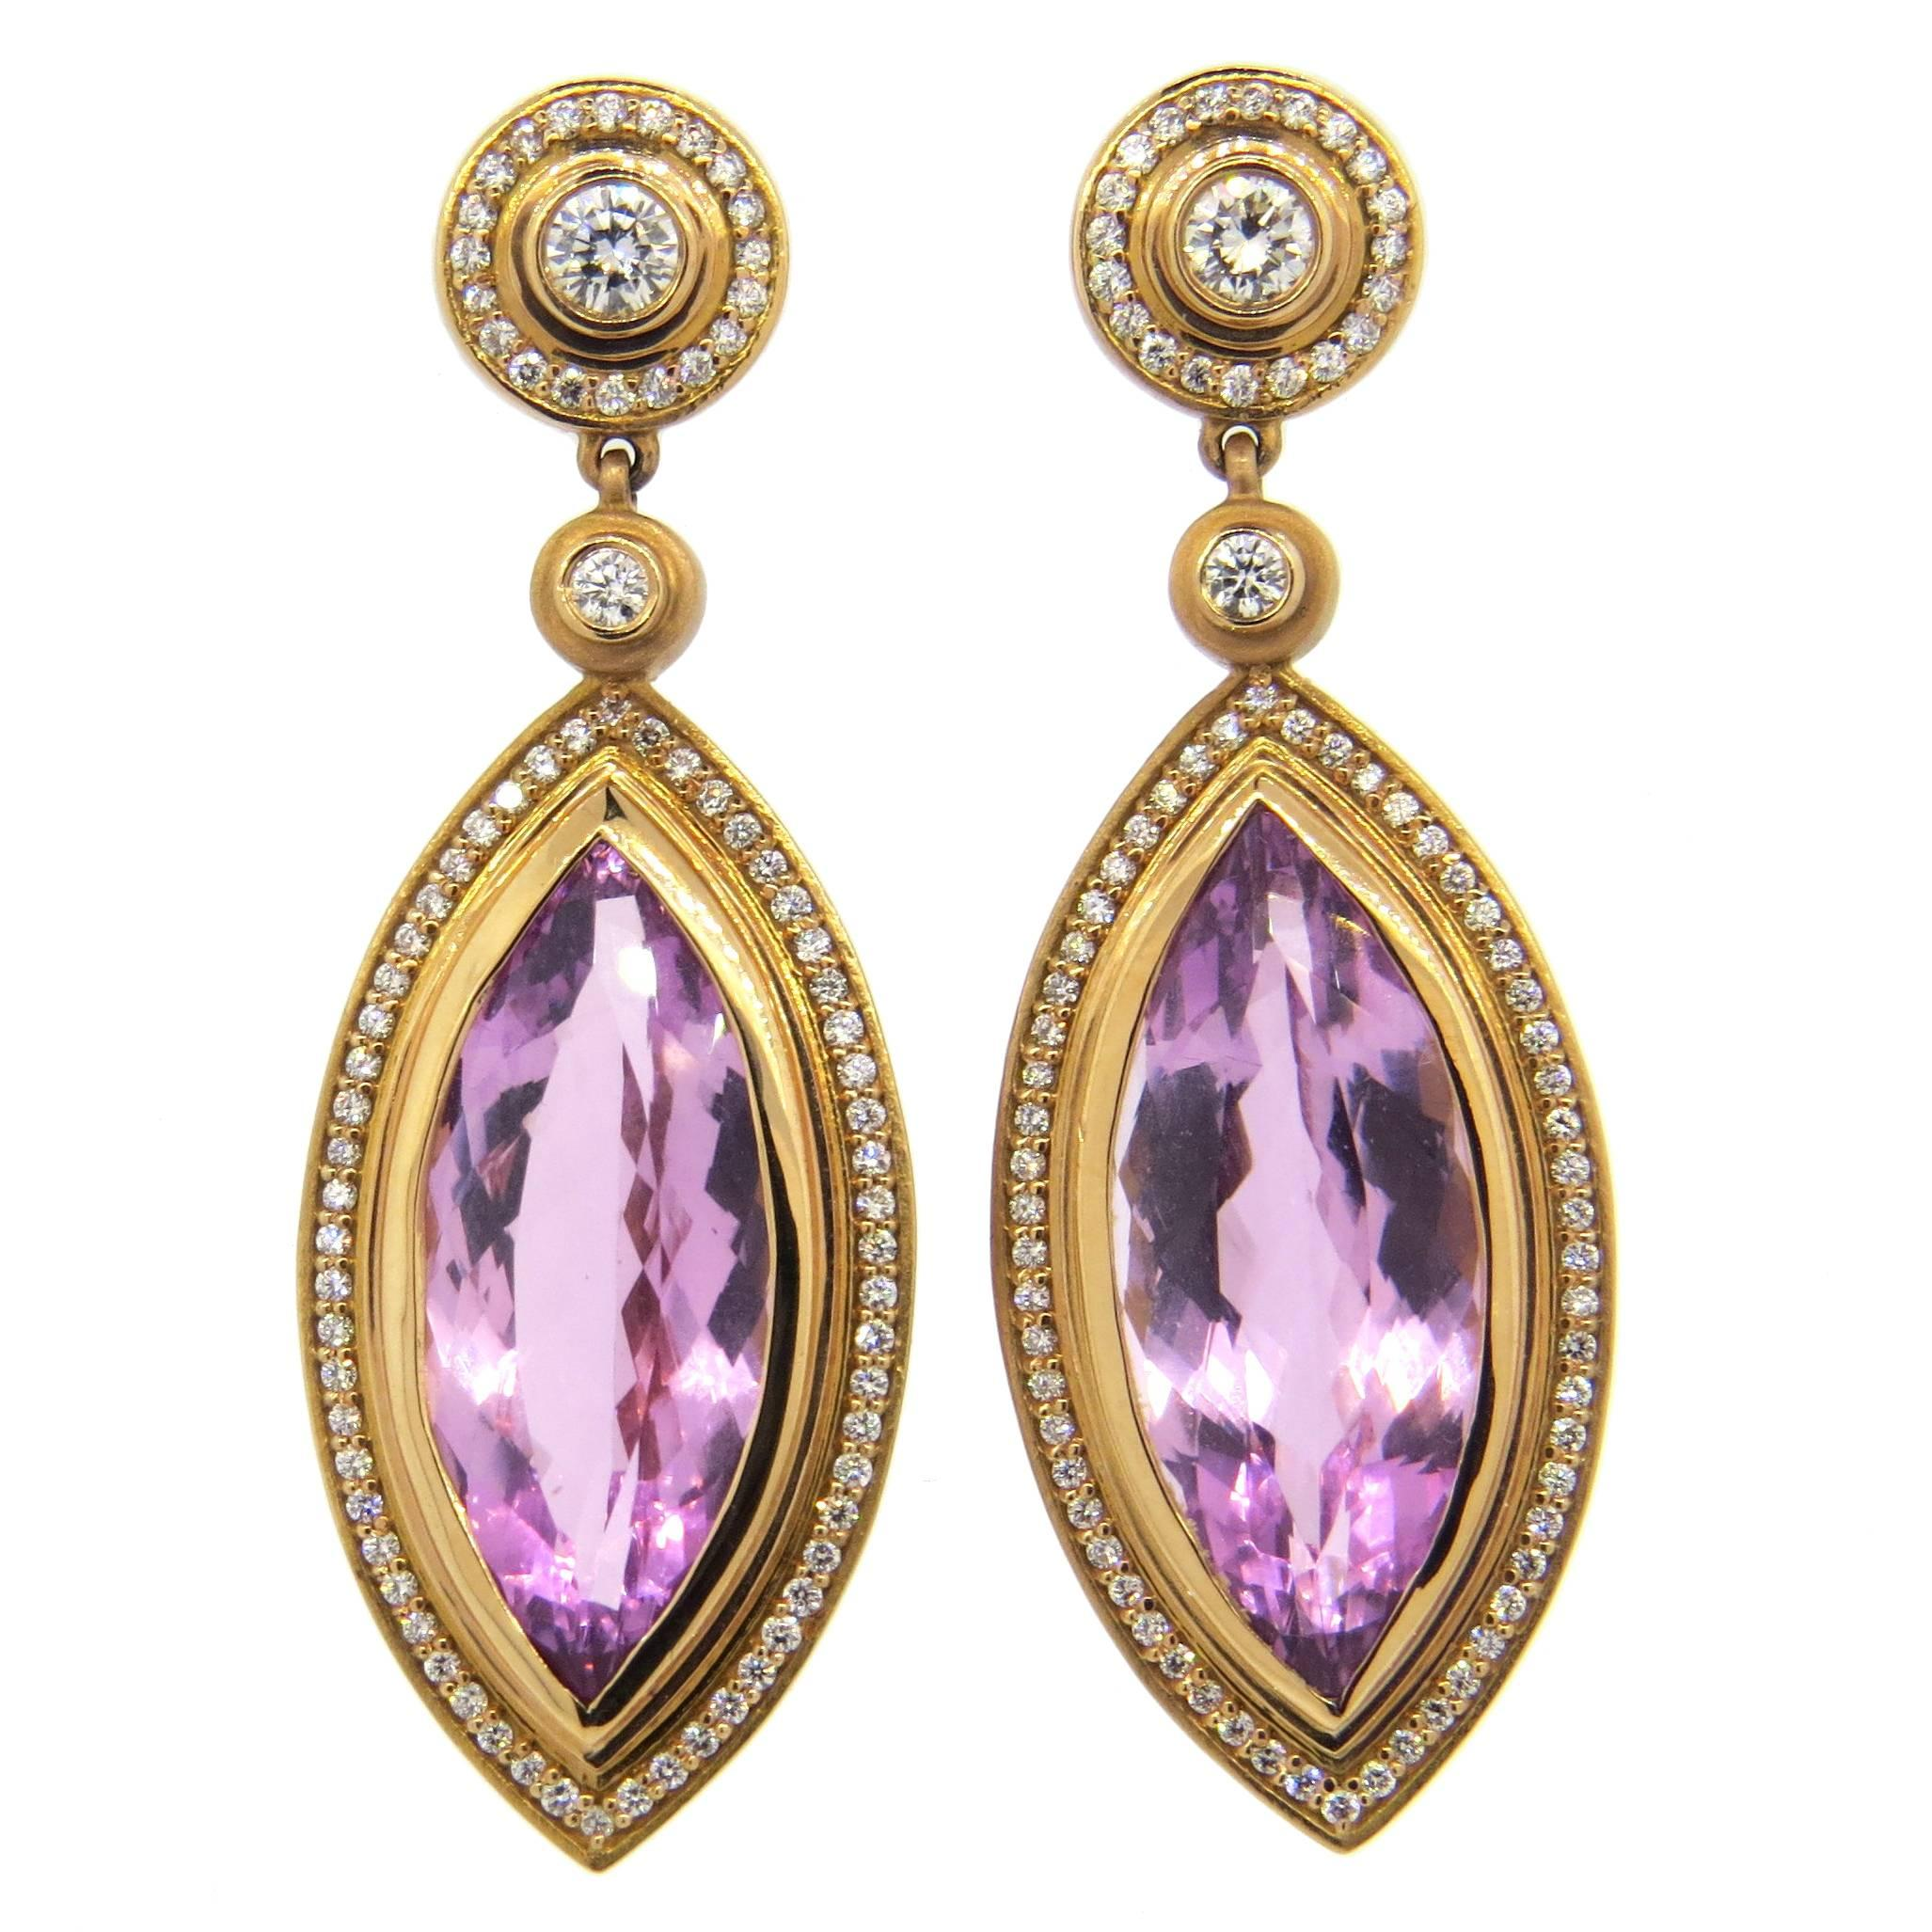 en a fullsize diamond bukowskis kunzite bukobject lots of and pair earrings brilliant cut